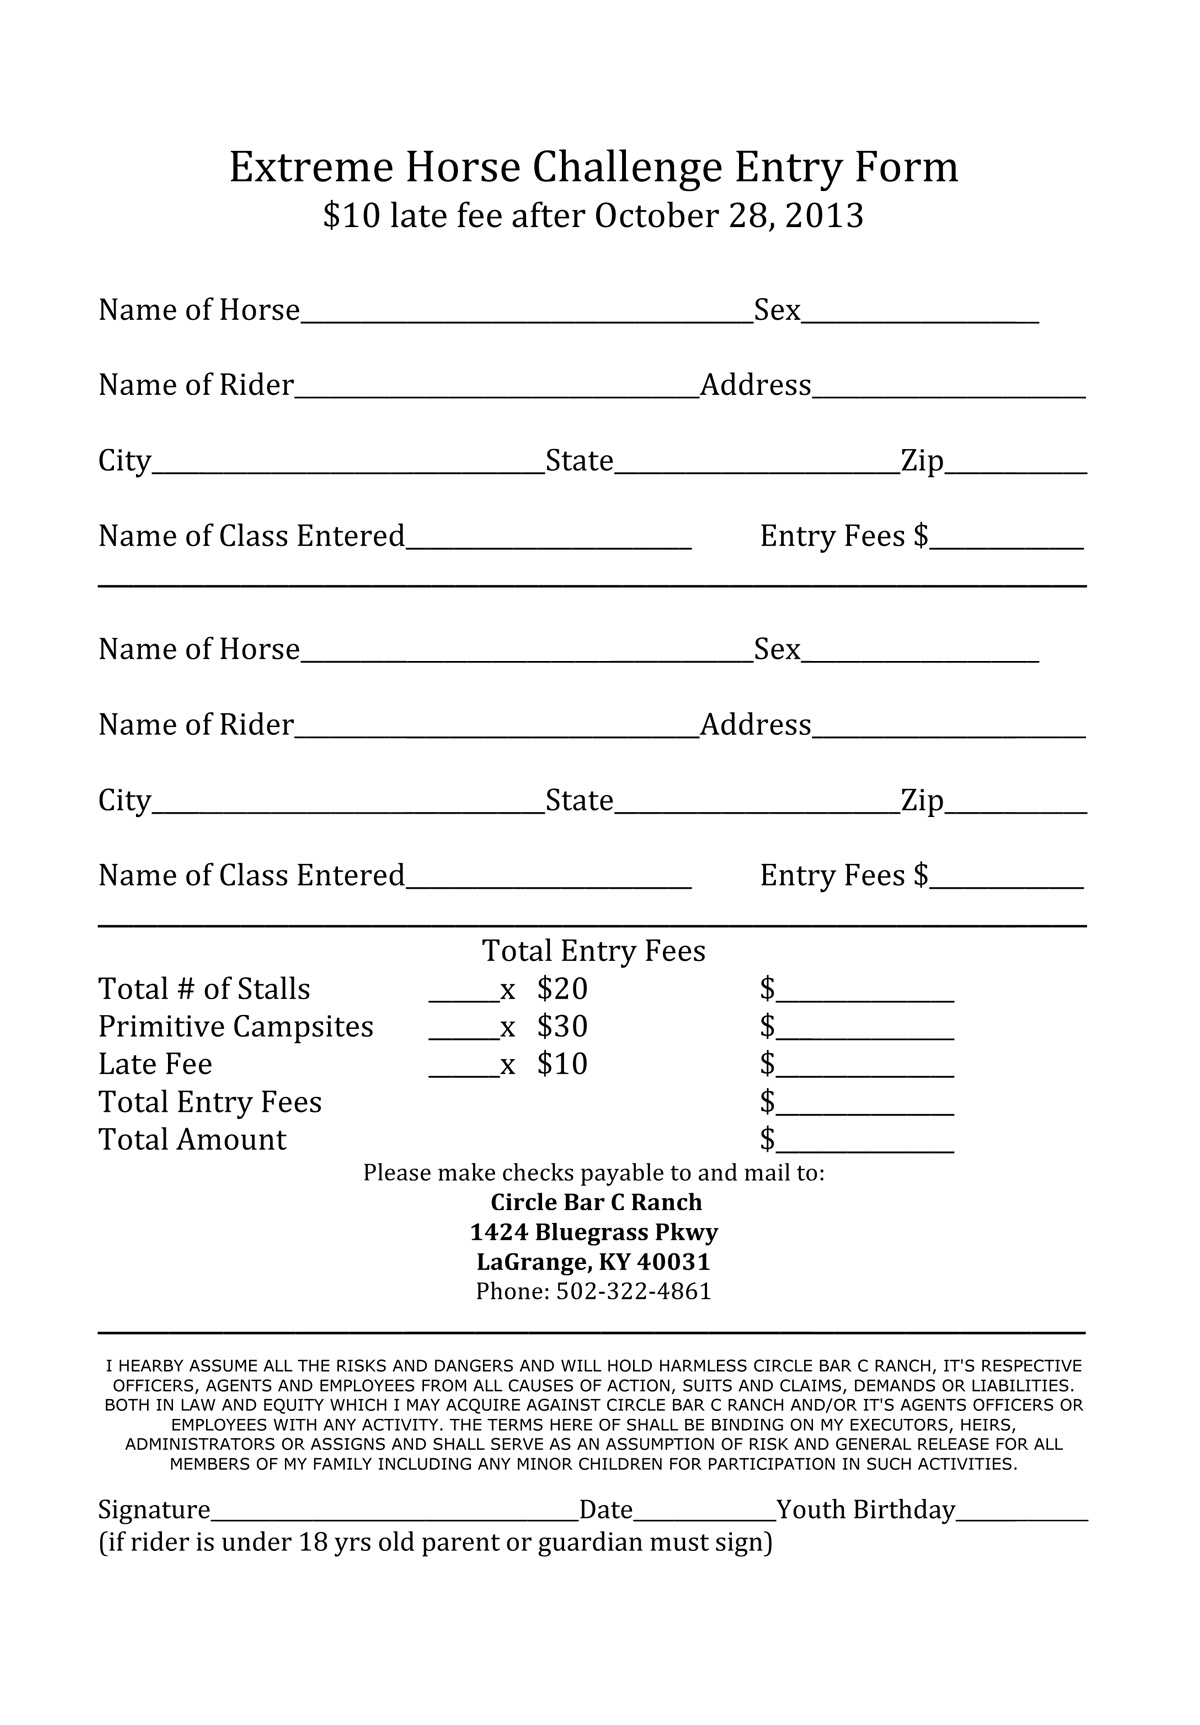 printable sign up forms